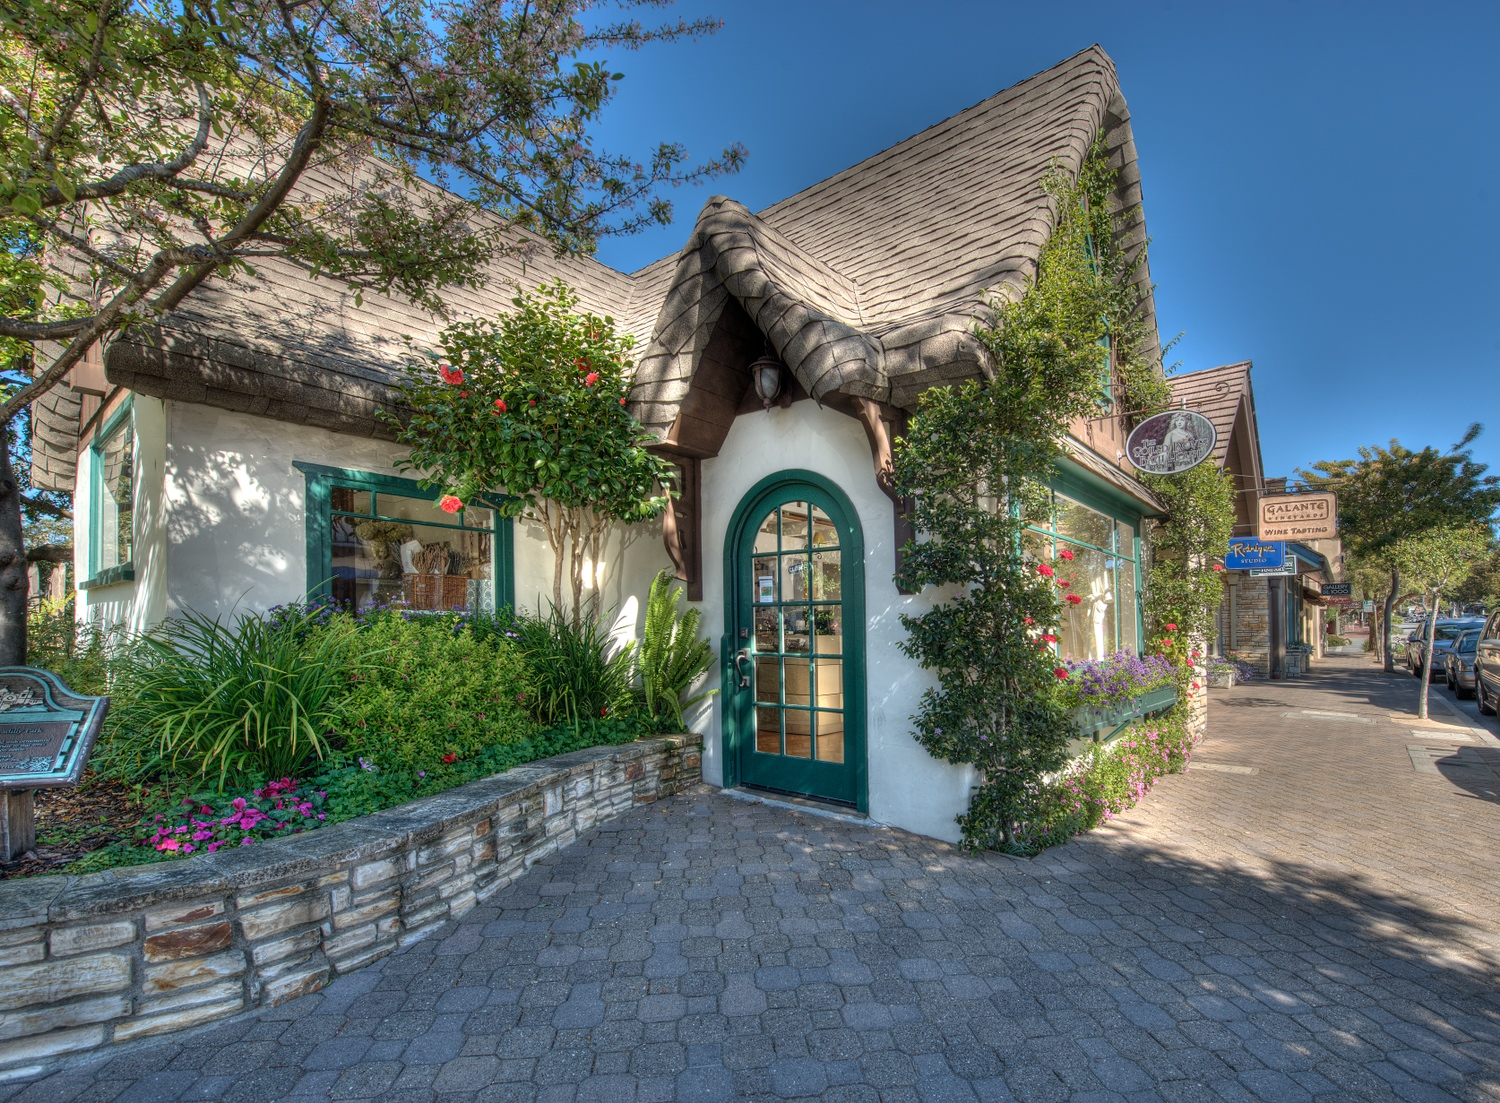 Fairytale Architecture of Carmel, California